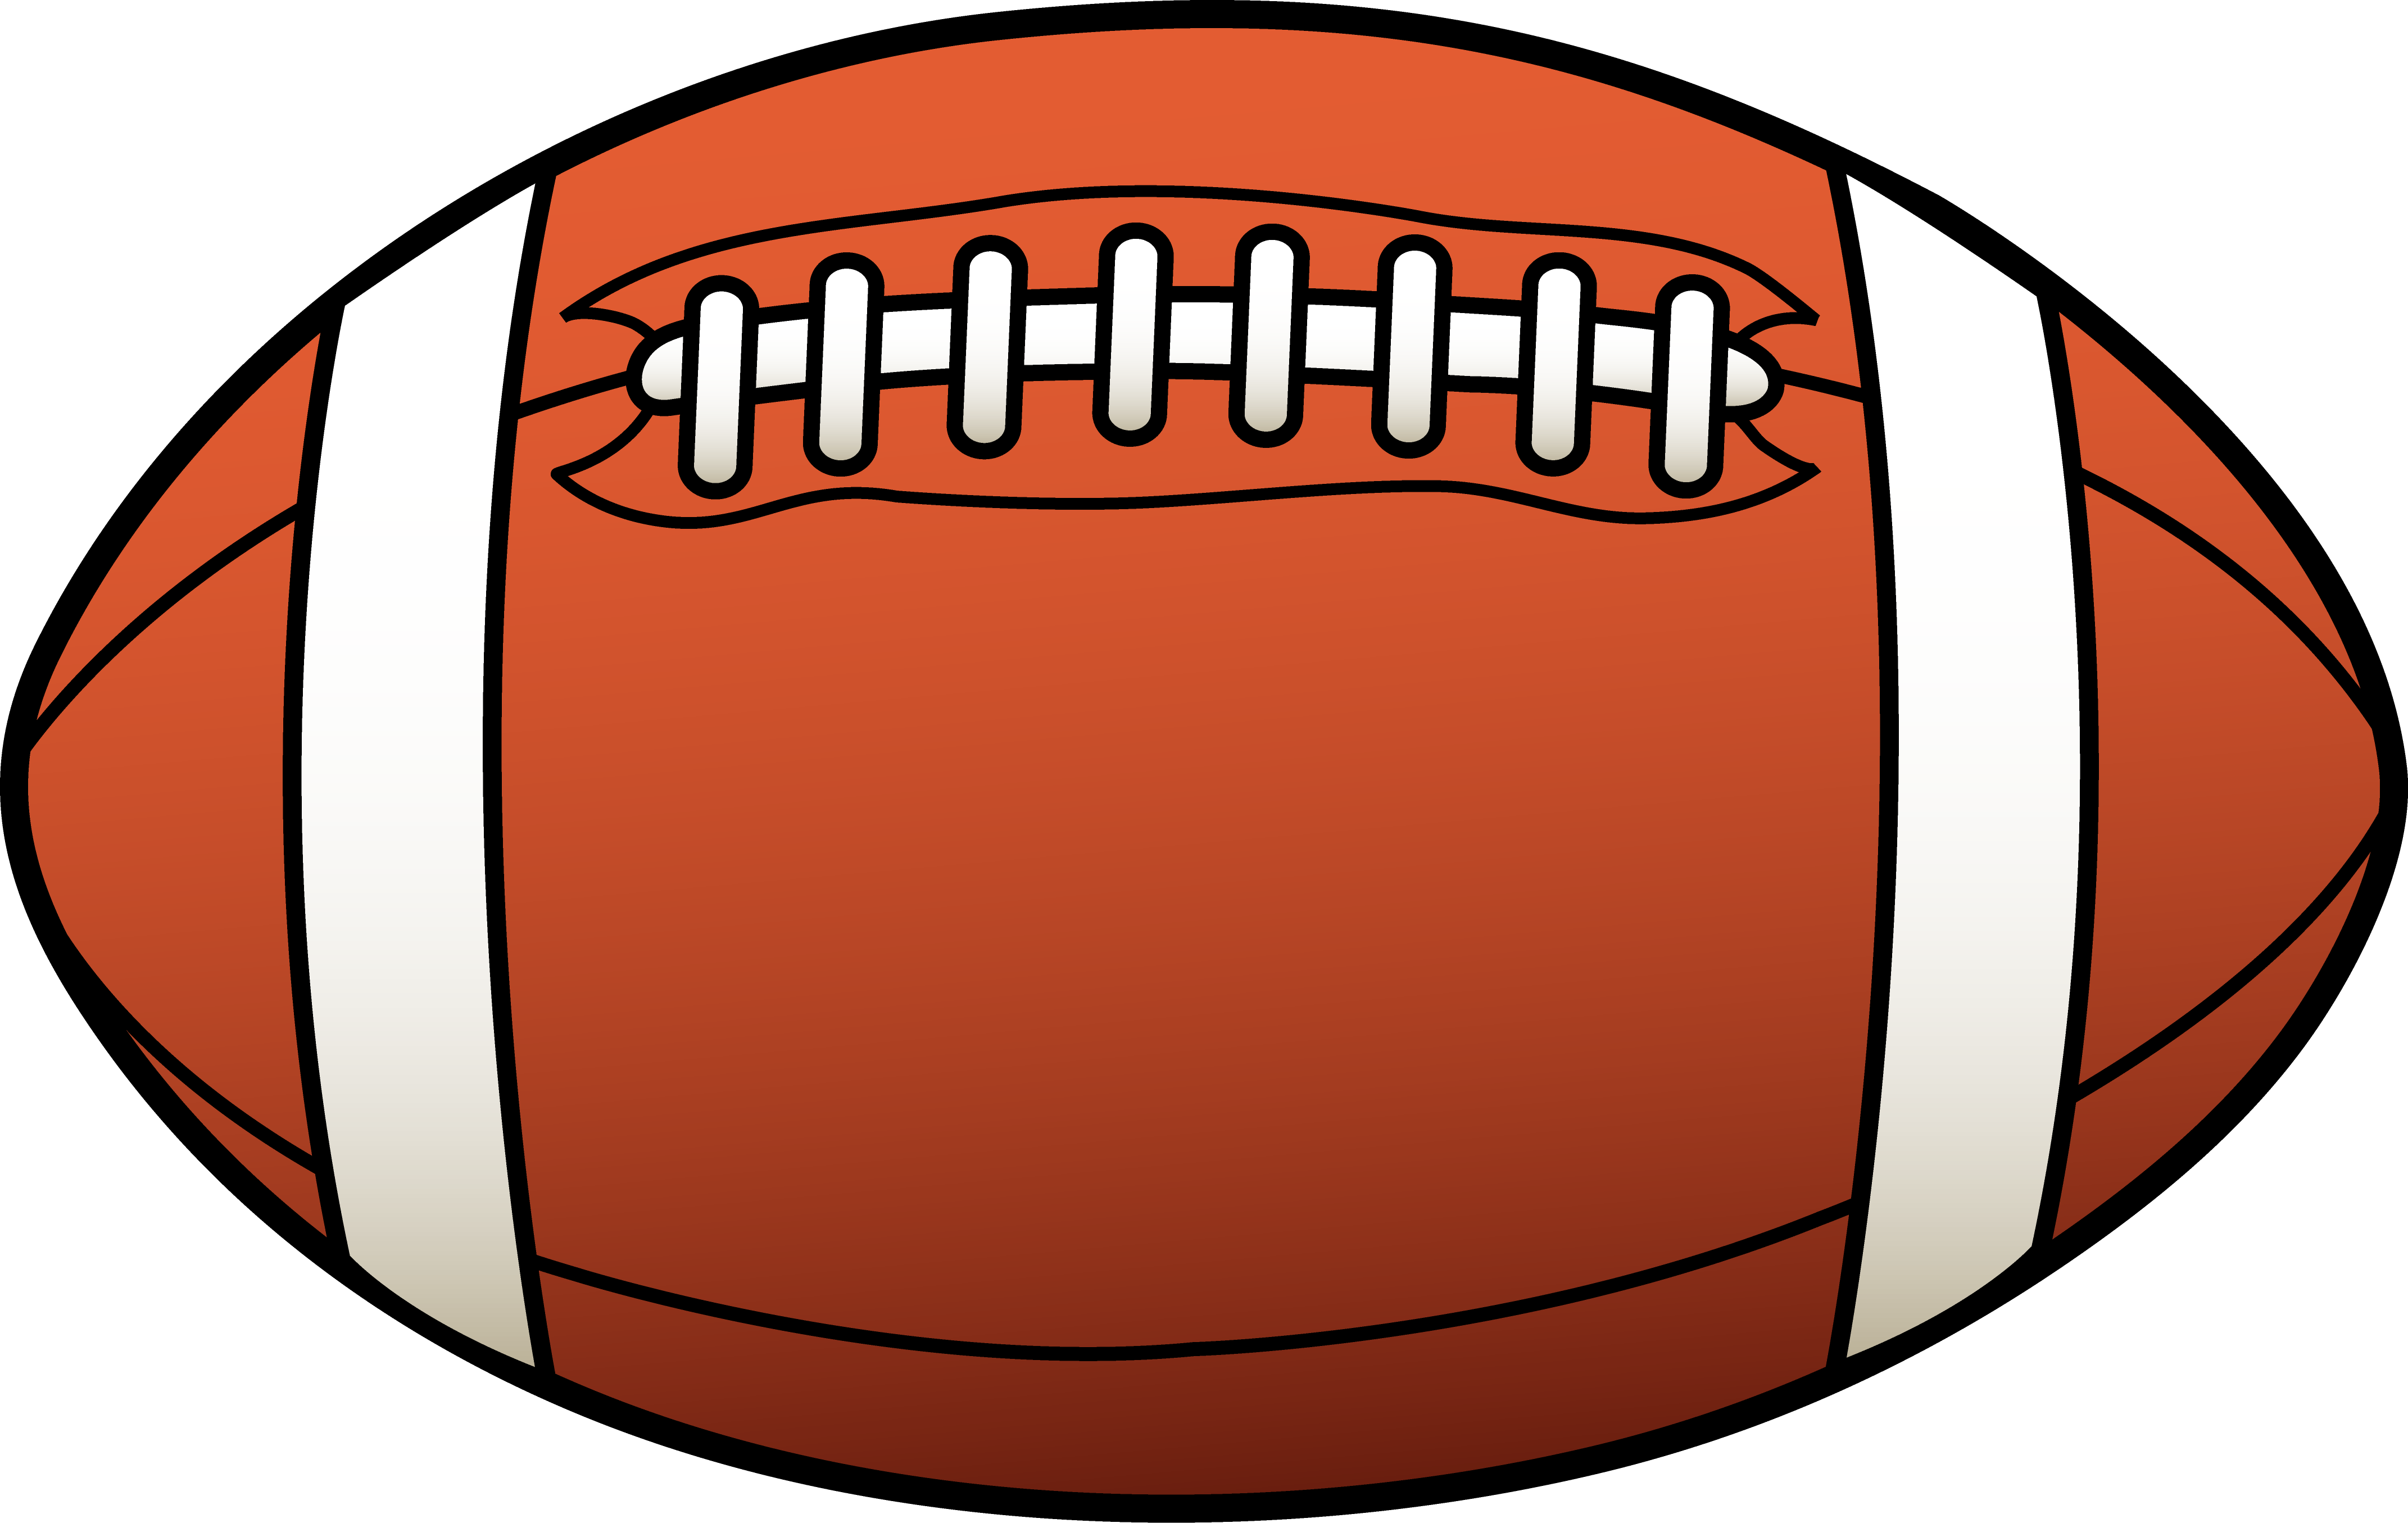 Football Clipart Black And White   Clipart Panda   Free Clipart Images